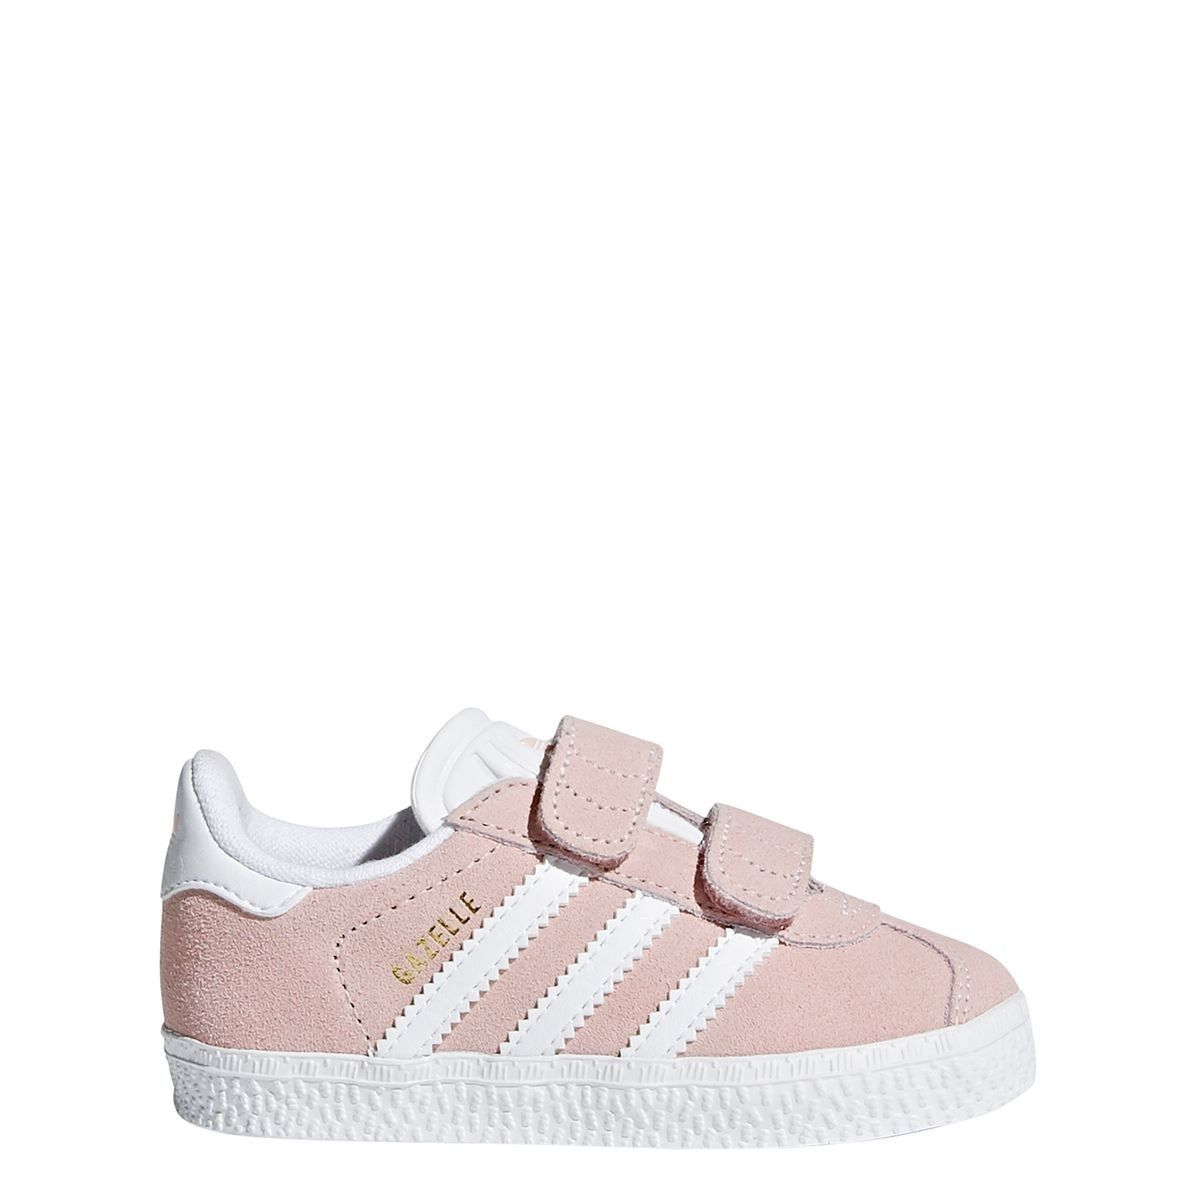 Baskets Adidas Gazelle 23